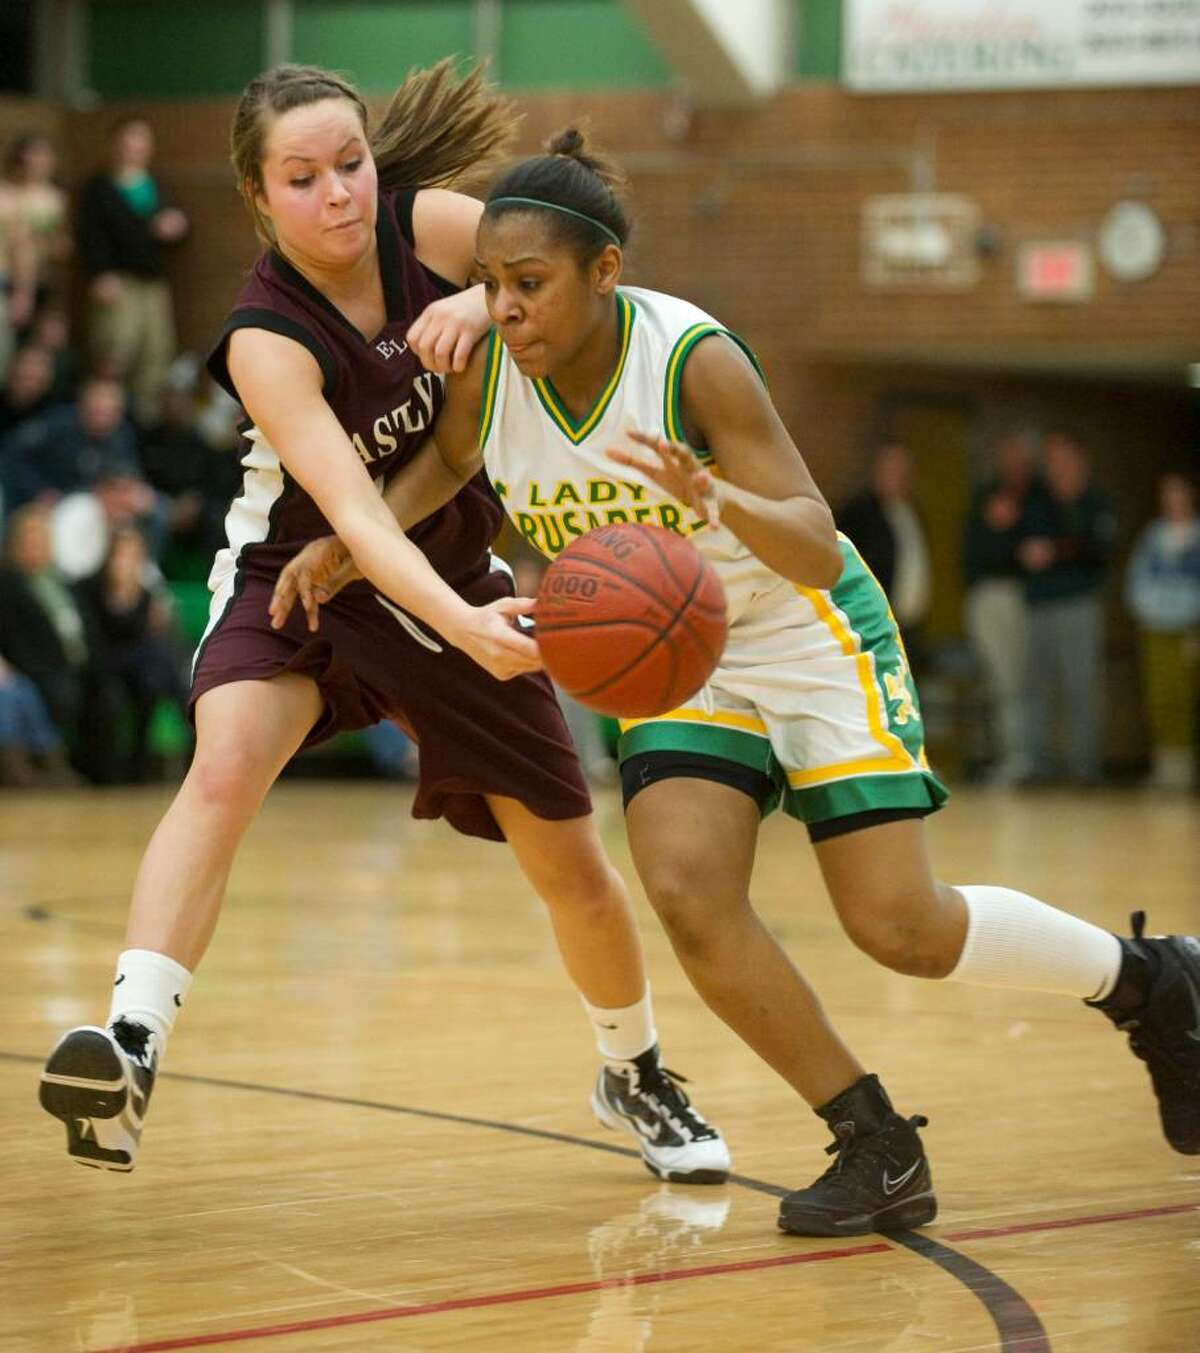 East Lyme's Michelle Lagrotteria, left, tips the ball from Trinity's Jovan Kingwood's hands during the the first round of the 2010 CIAC Class L girls basketball tournament at Trinity Catholic High School in Stamford, Conn. on Monday, March 1, 2010.